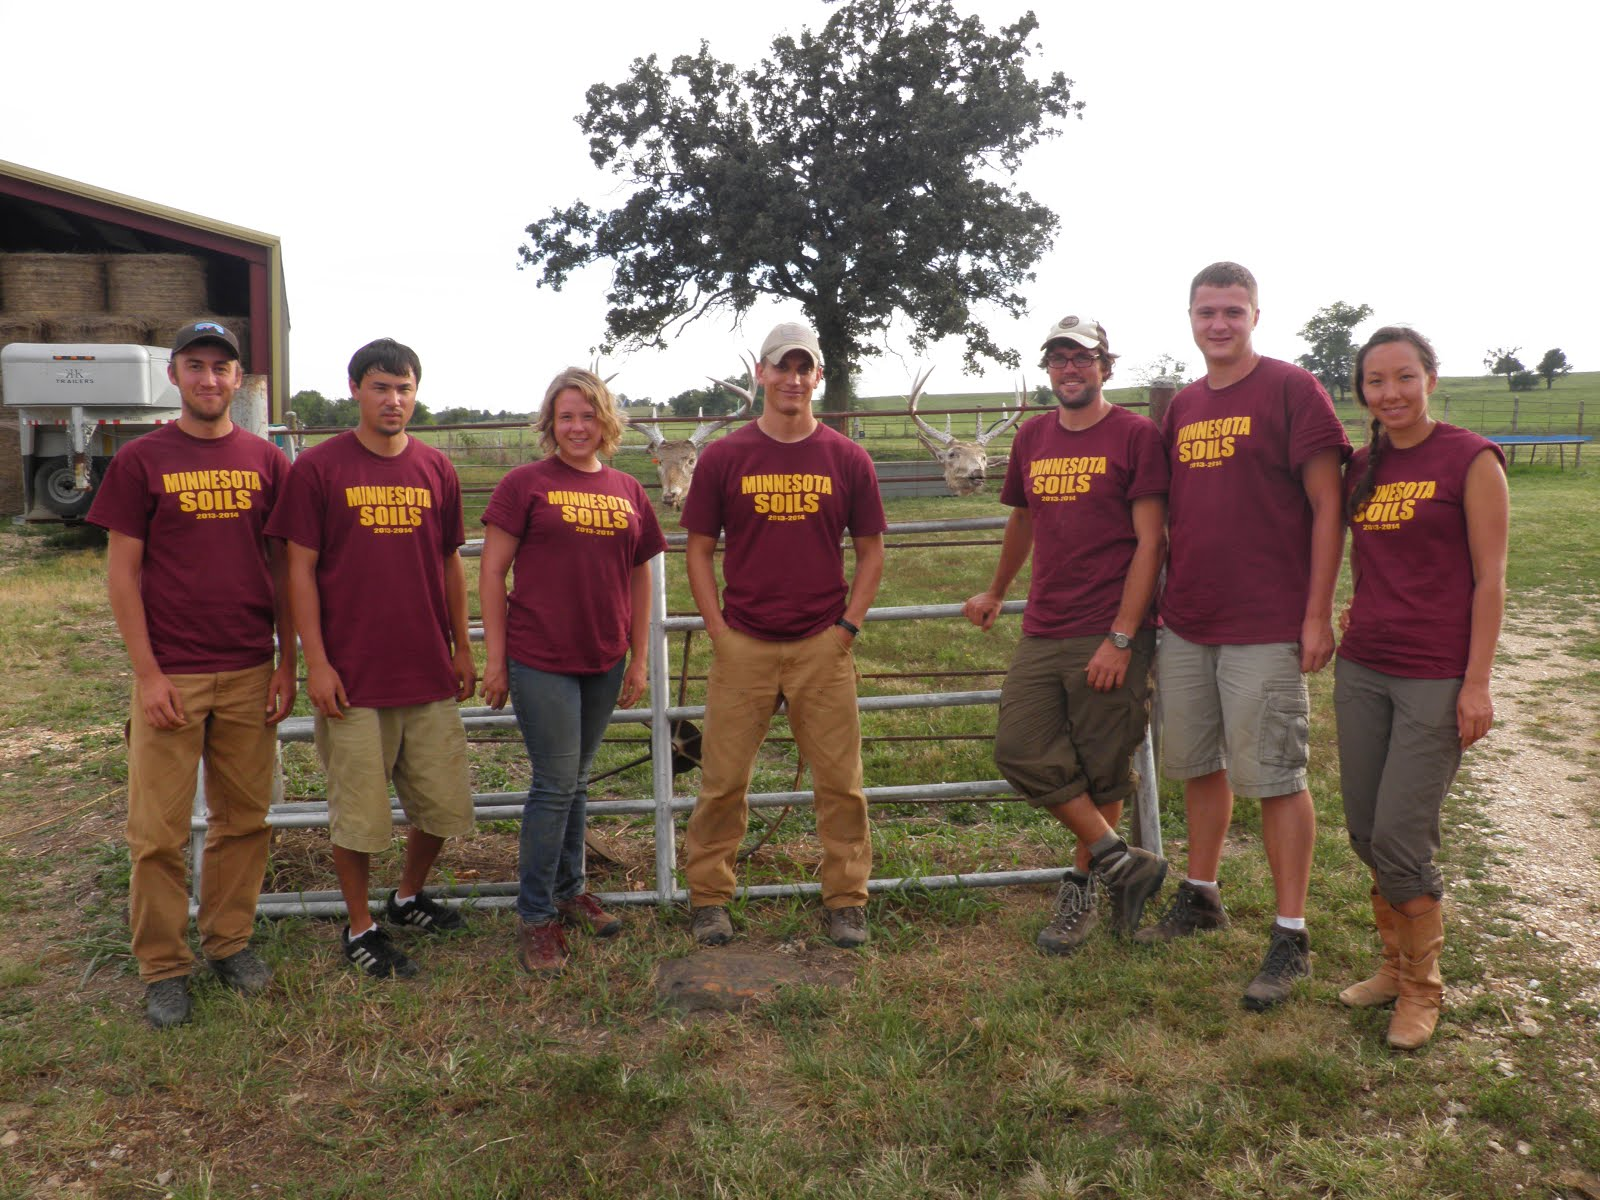 2013 University of Minnesota Soil Judging Team